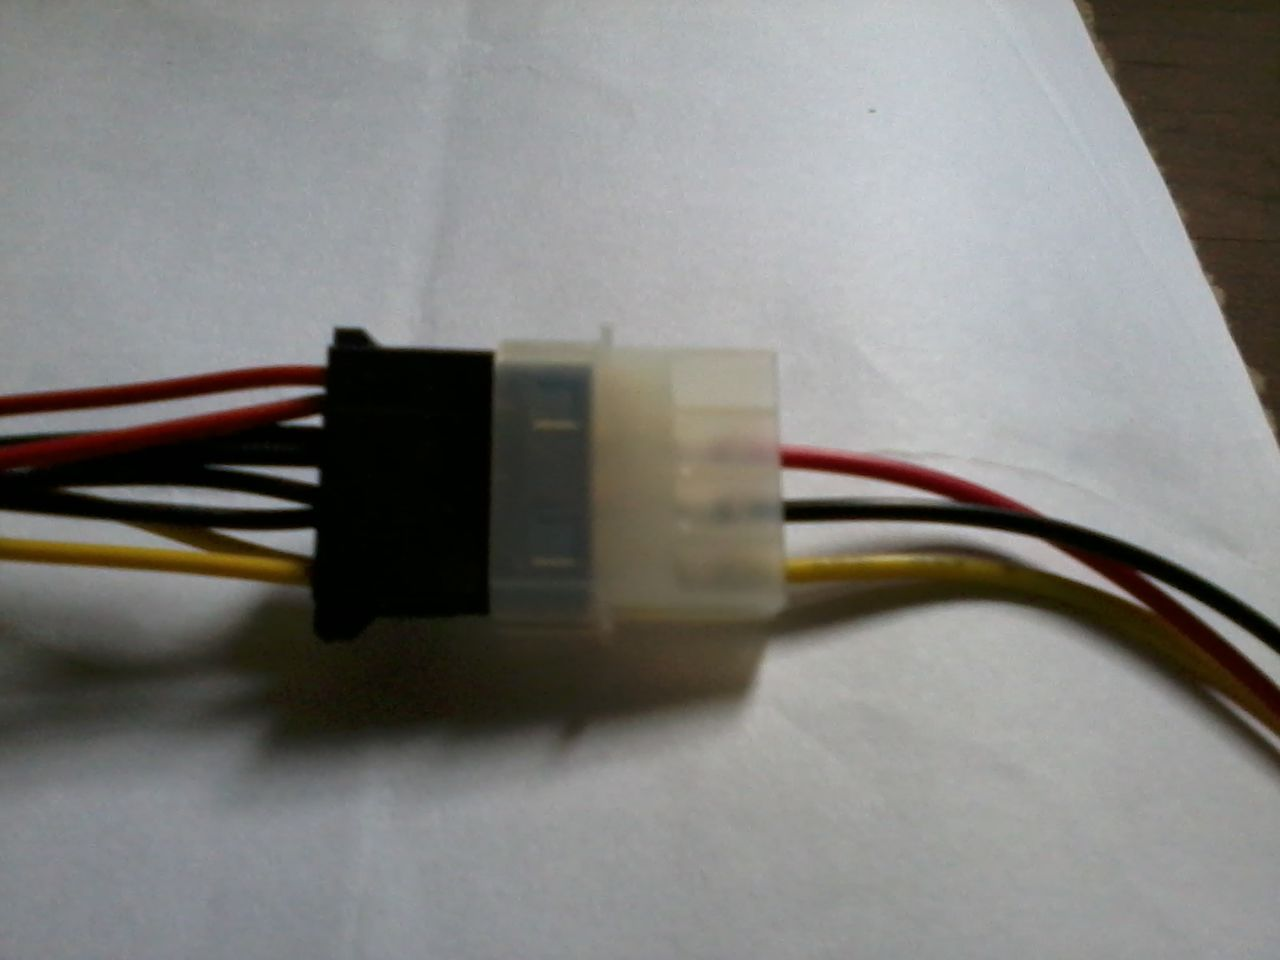 hight resolution of 6 to 4 pin power adapter red wire connected on black wire super enter